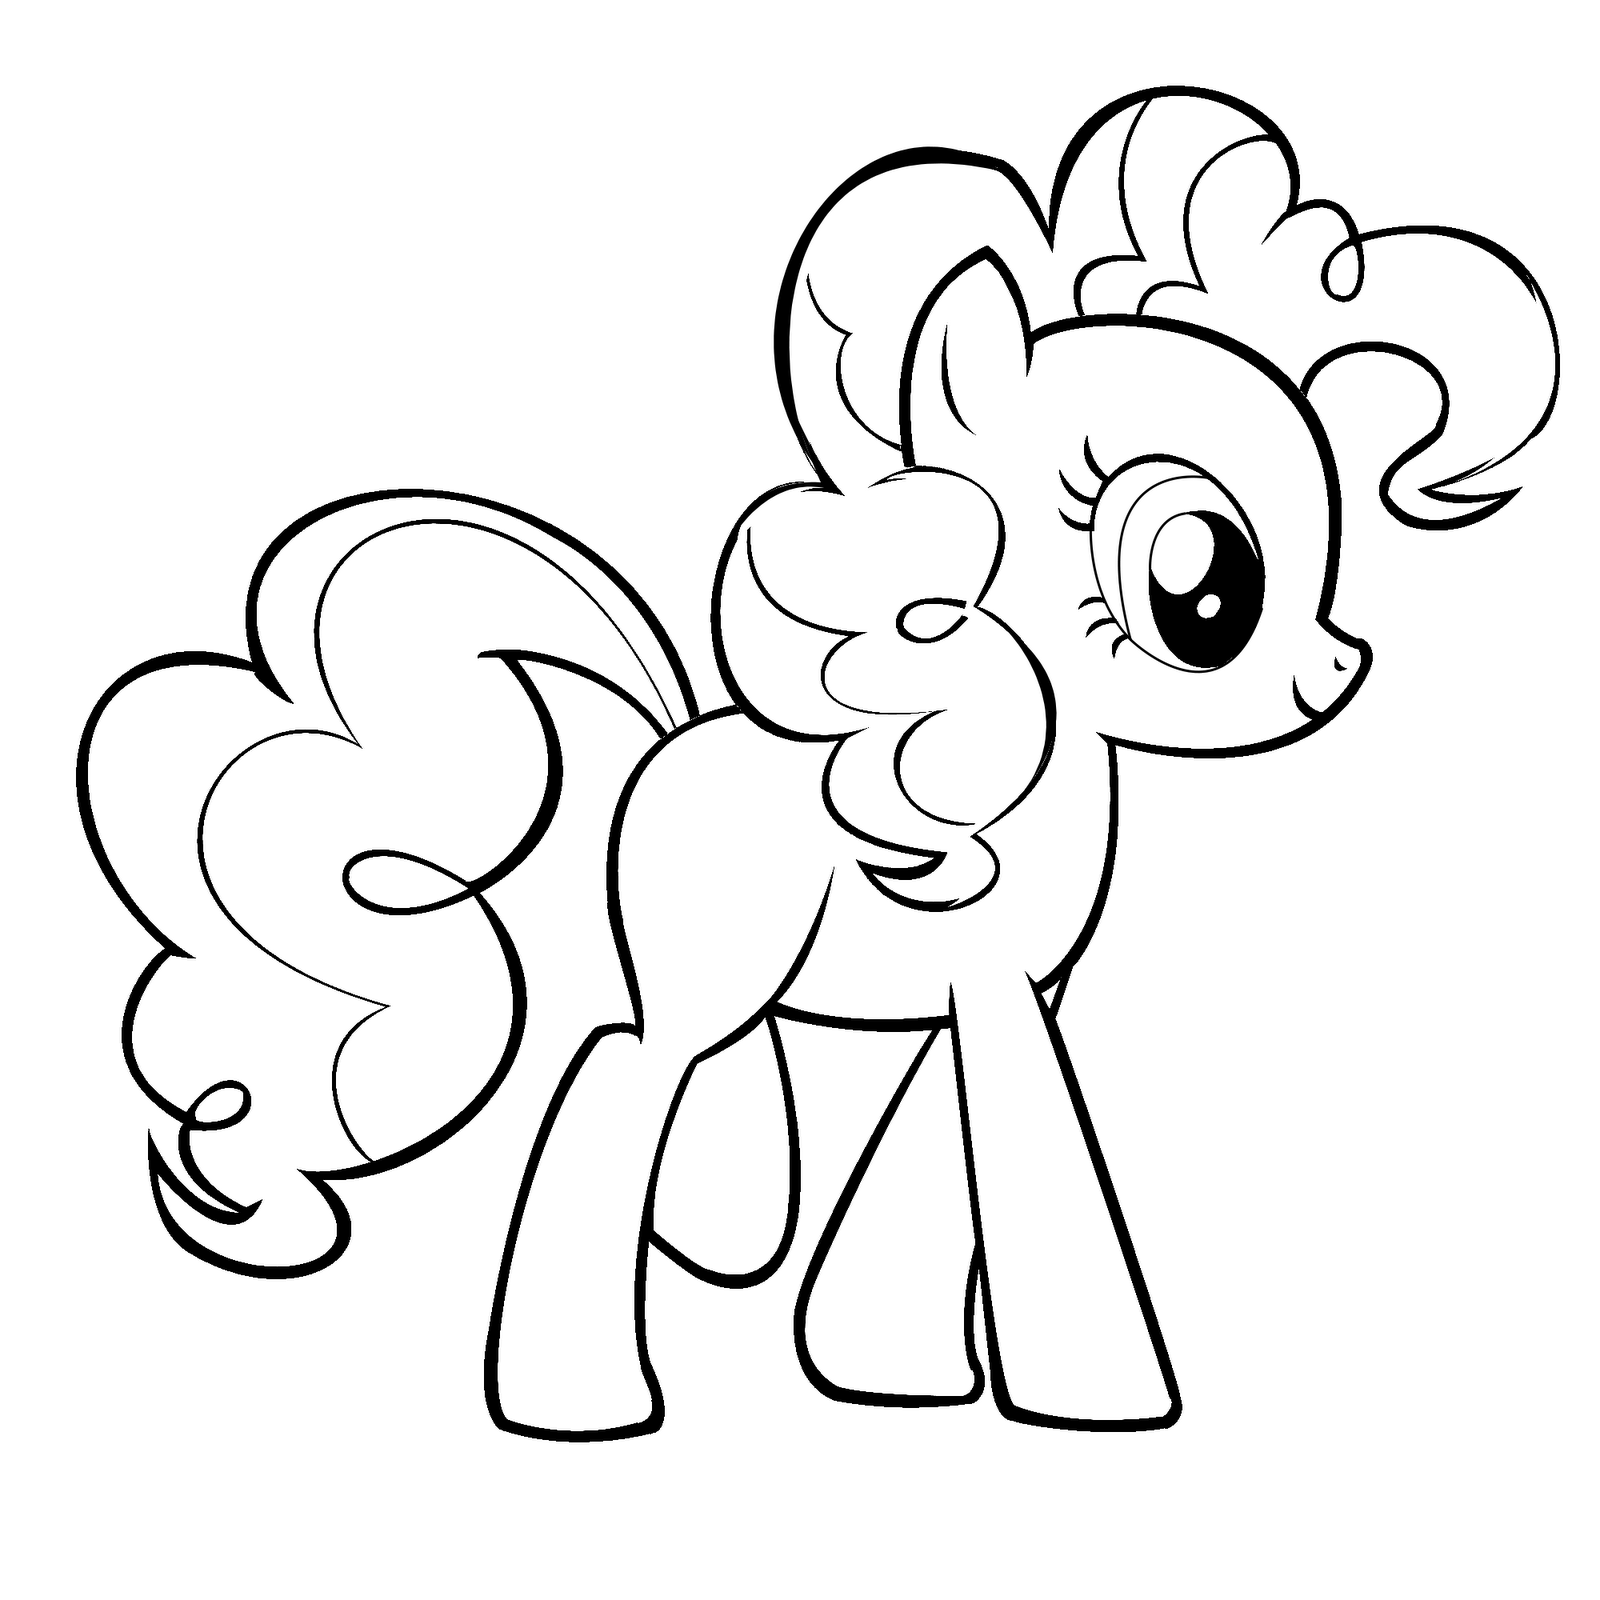 my little pony template my little pony drawing template at paintingvalleycom template my little pony